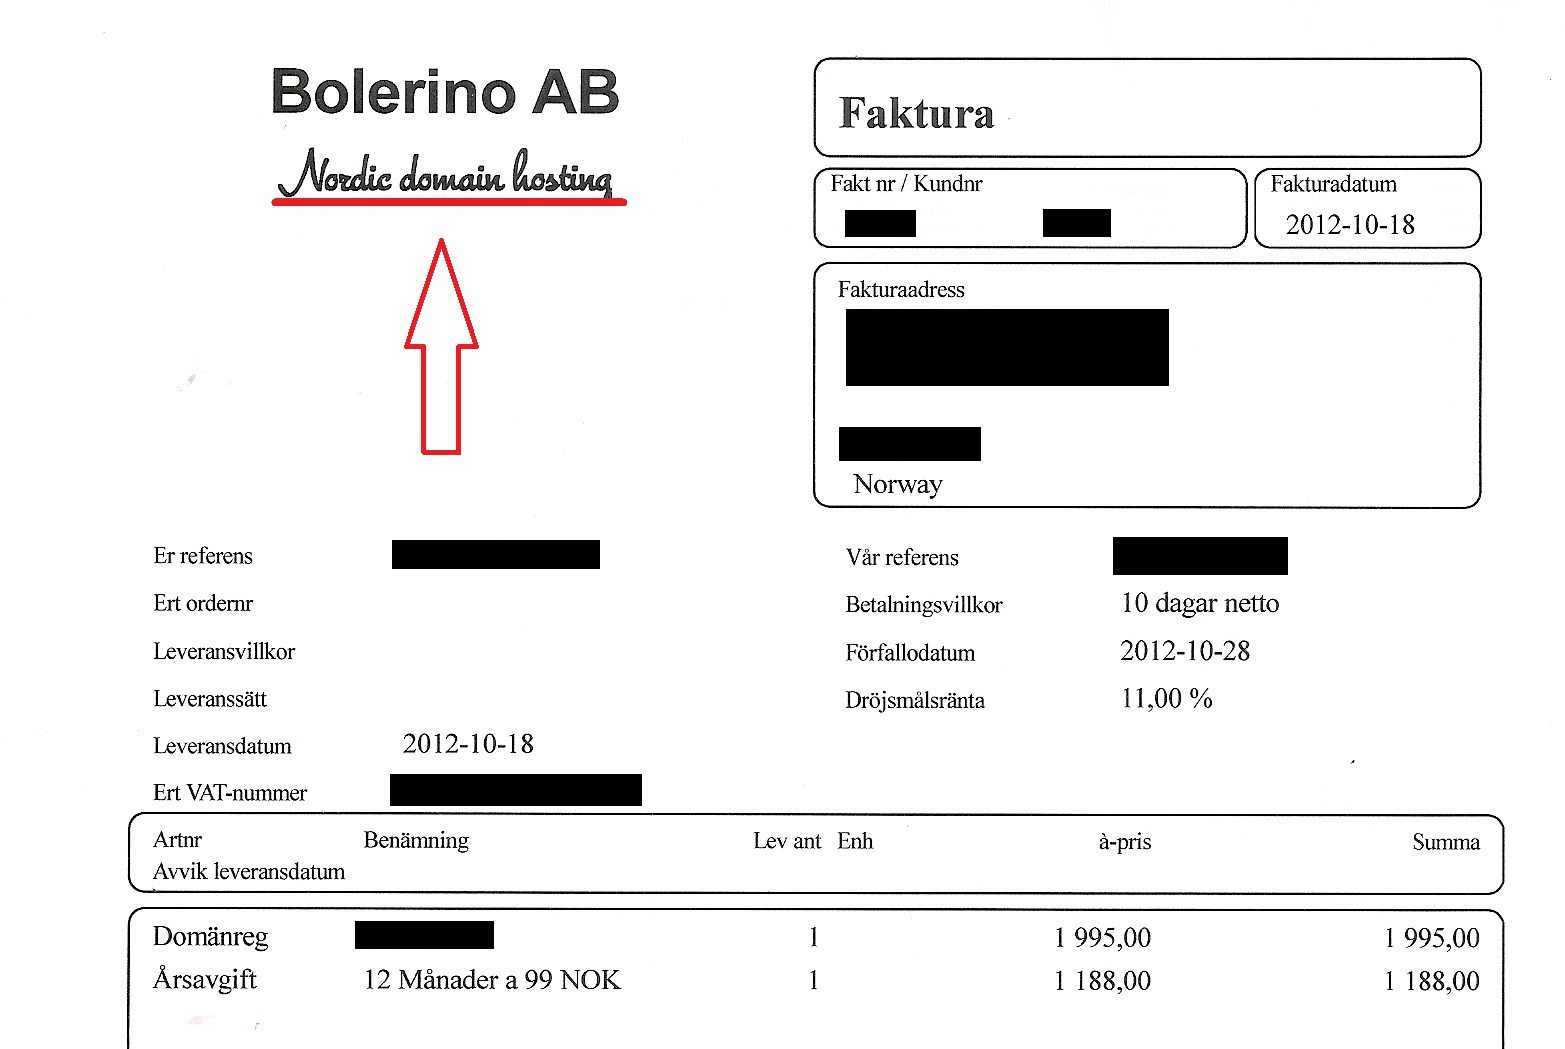 Two Wrongs Make a Right? Bolerino + Nordic Domain Hosting